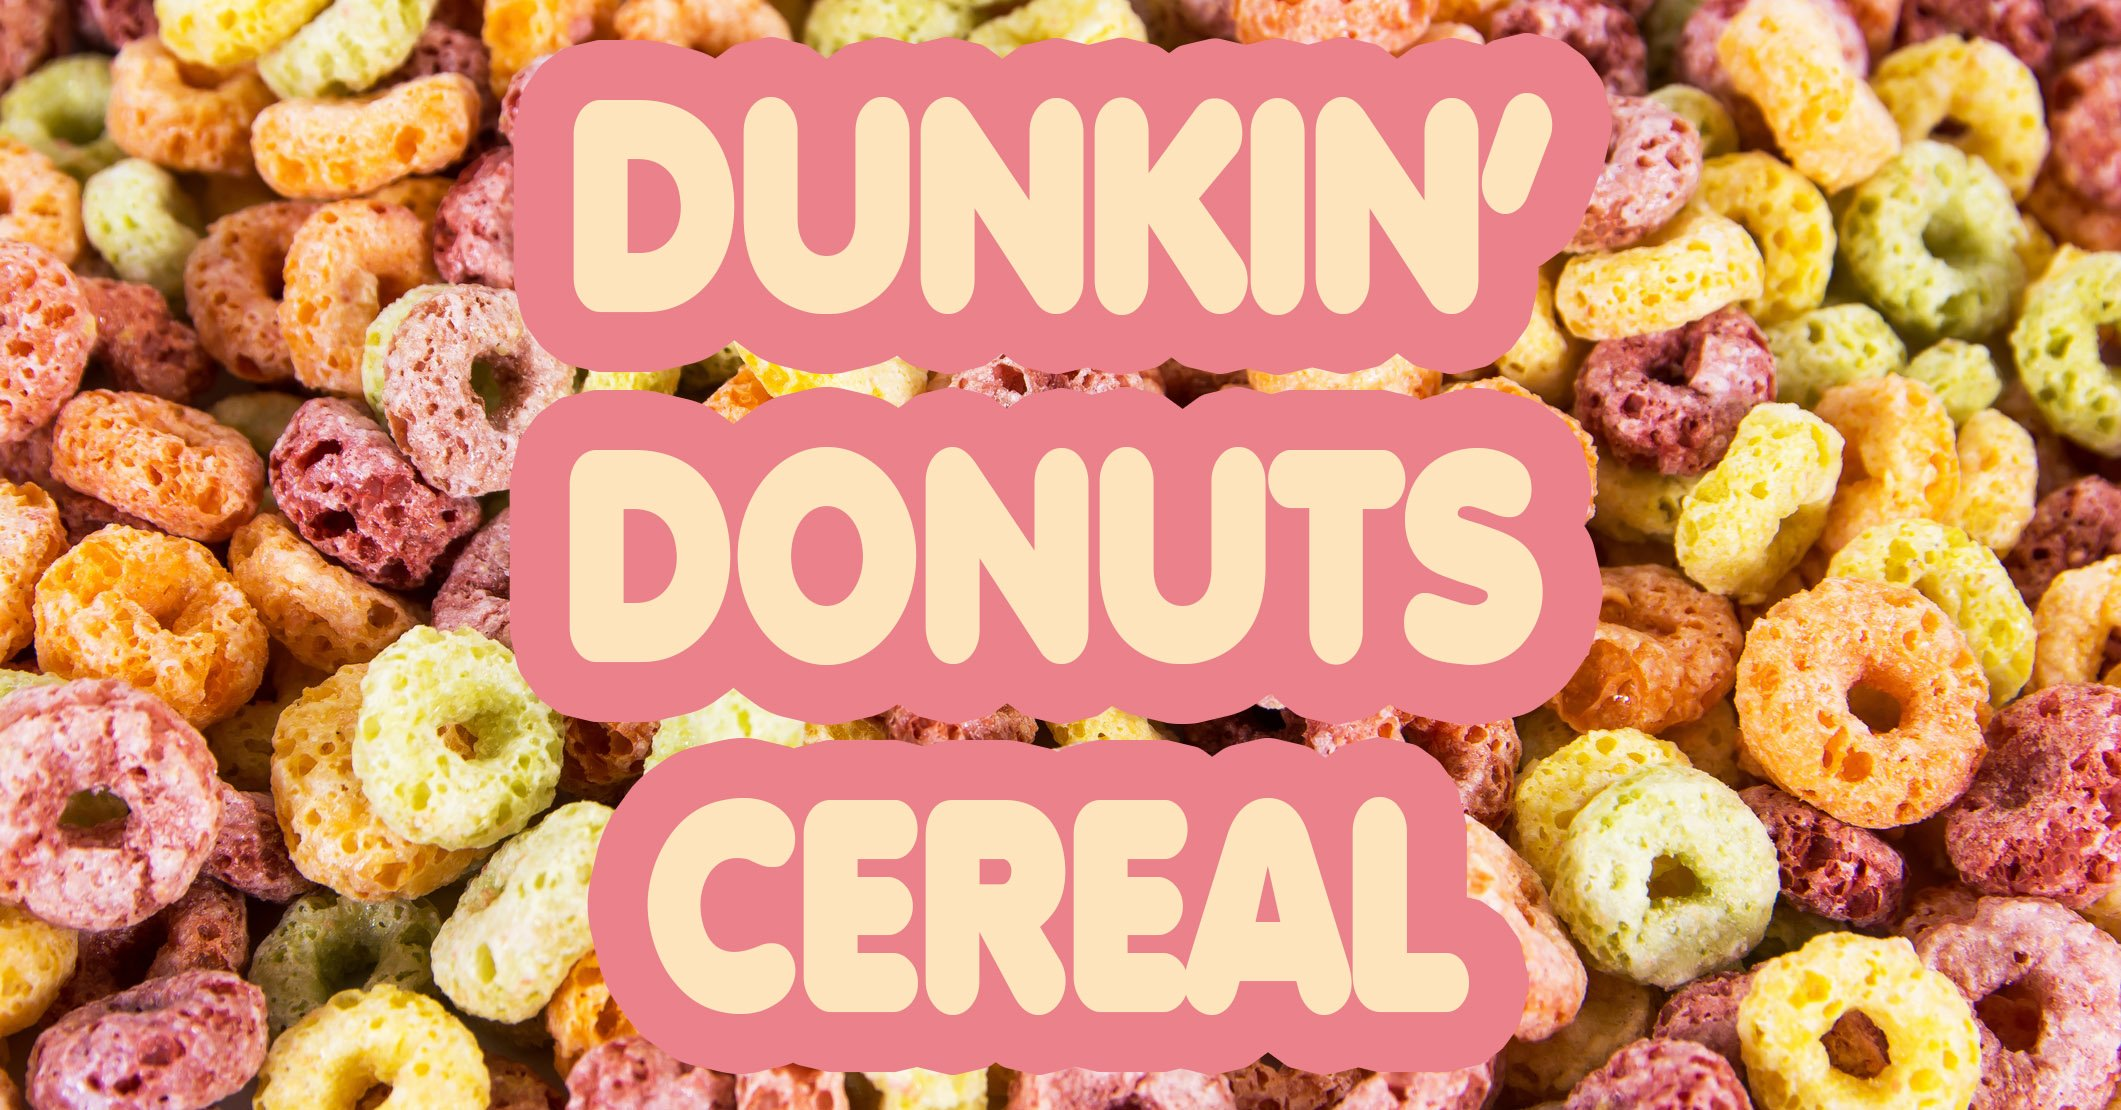 can you guess the shape of these discontinued cereals